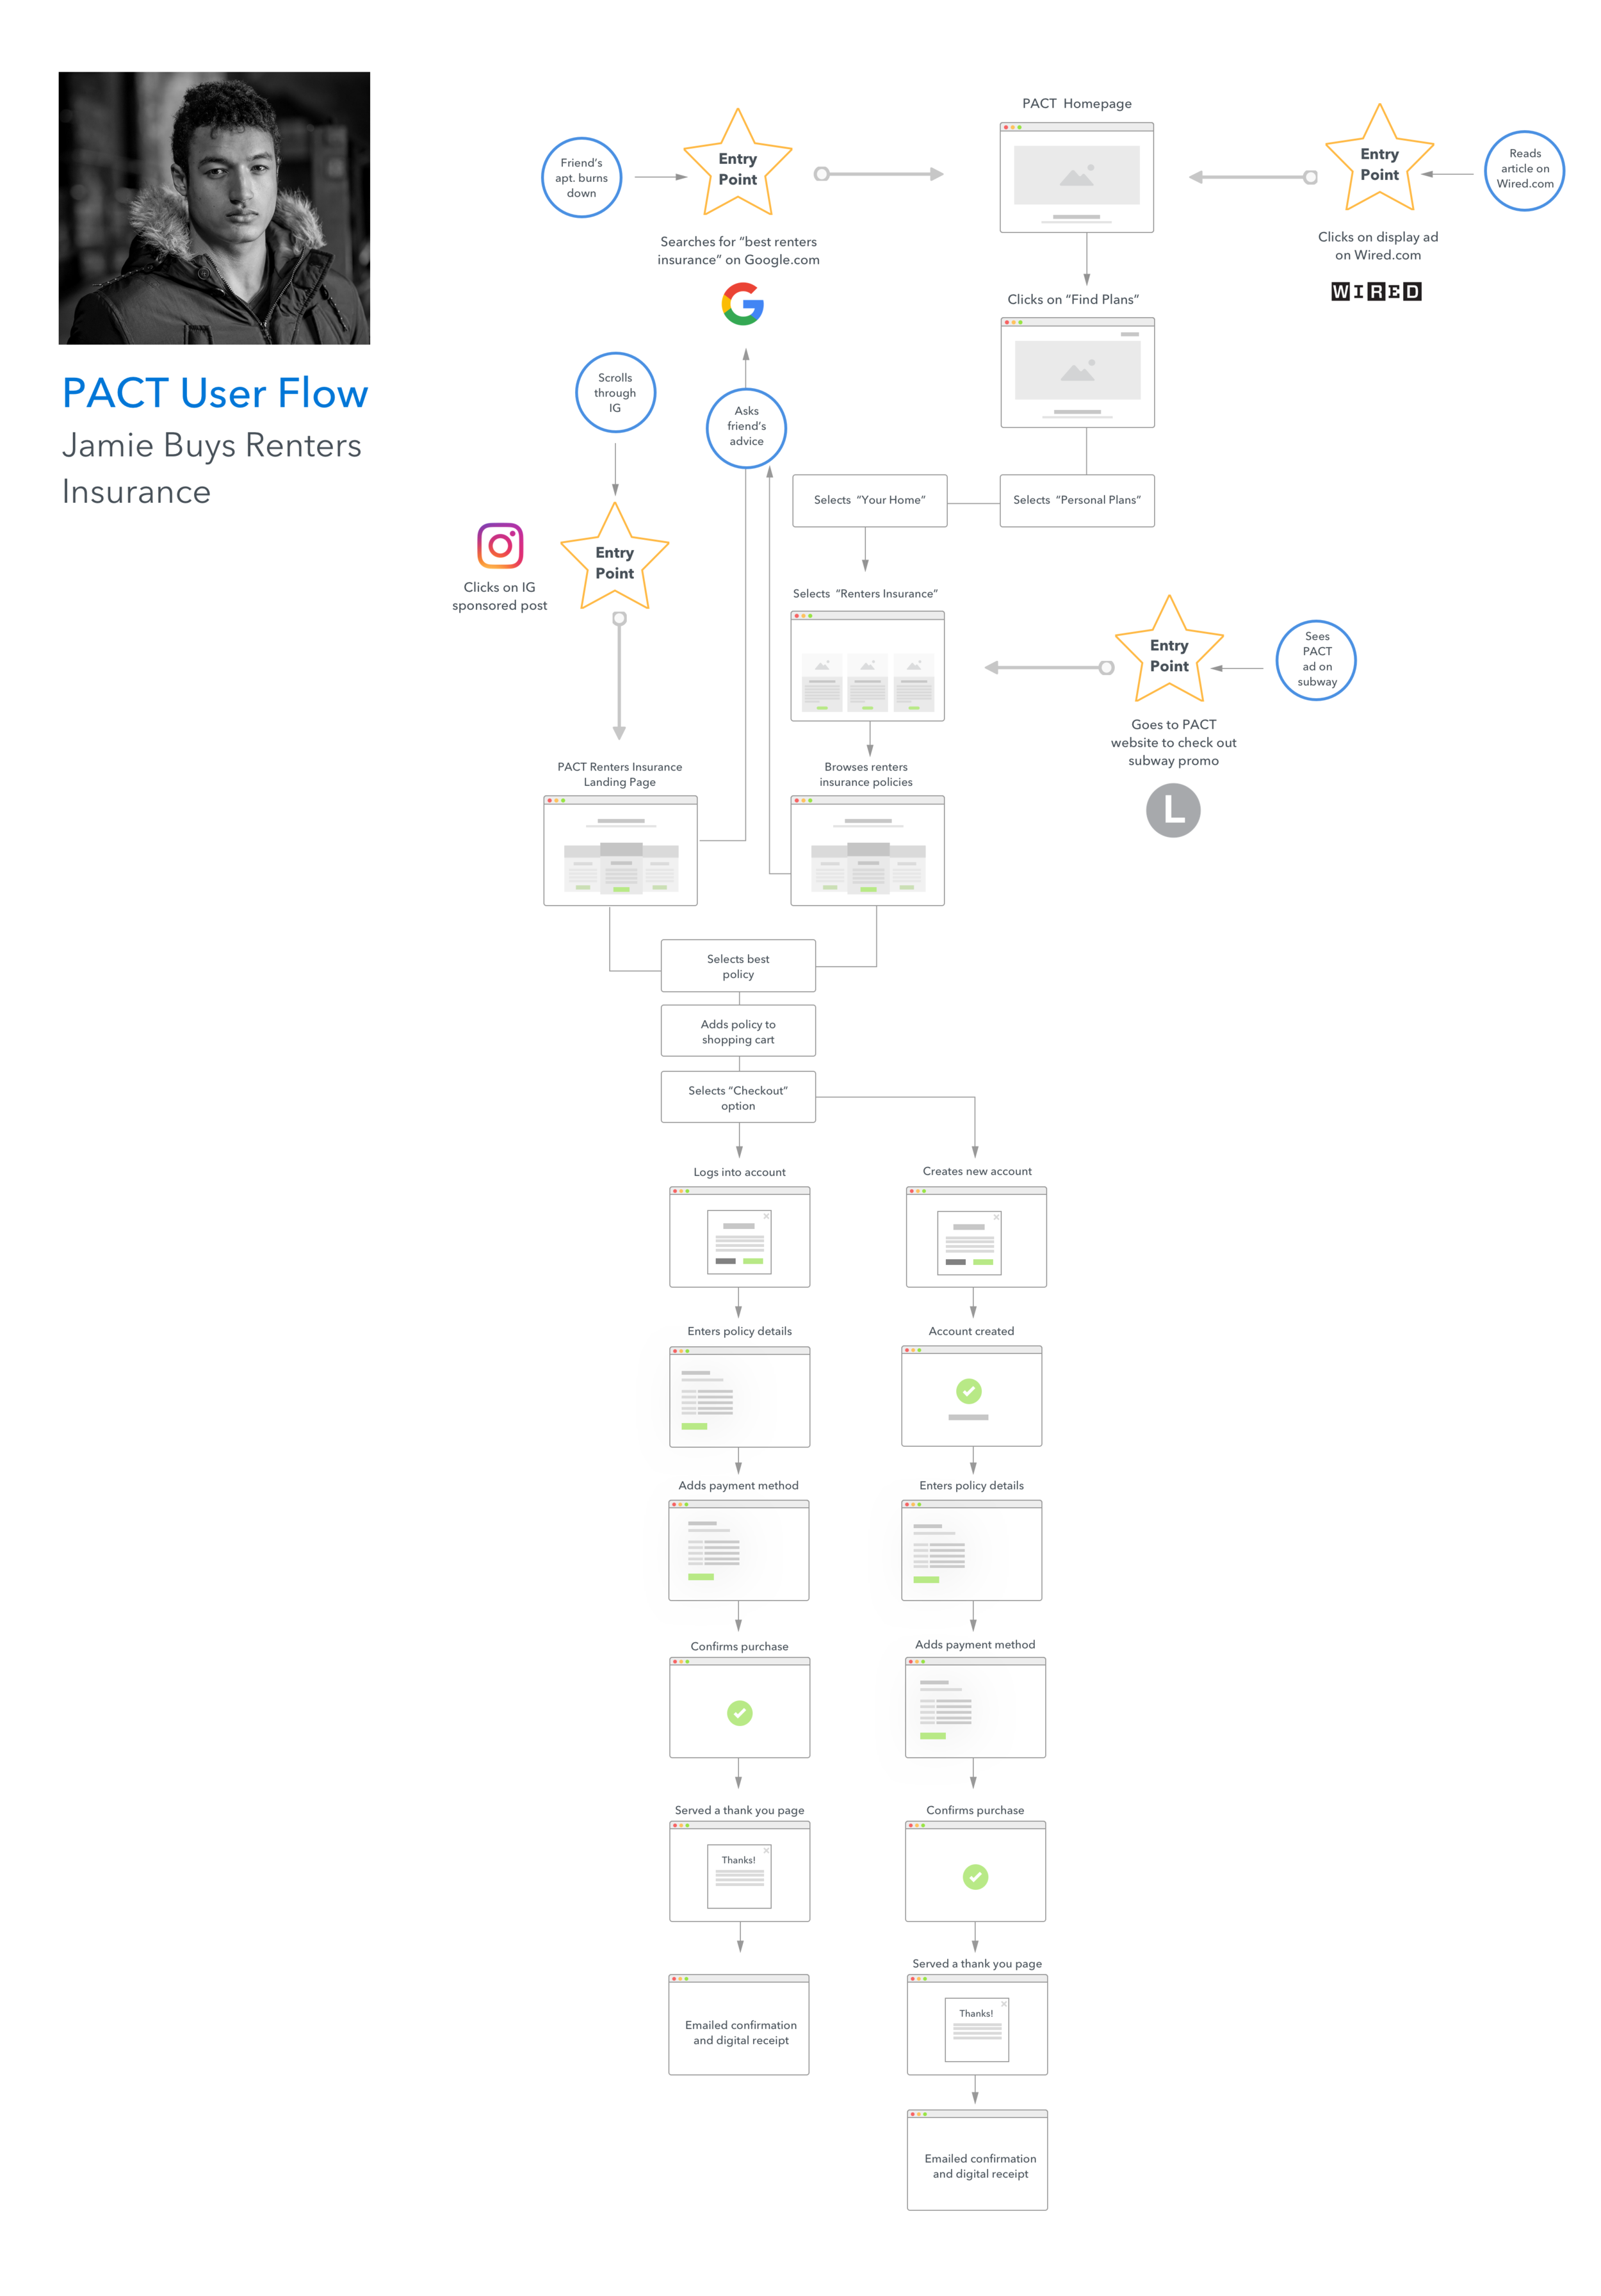 User Flow Highlighting Various Entry Points into the Conversion Funnel